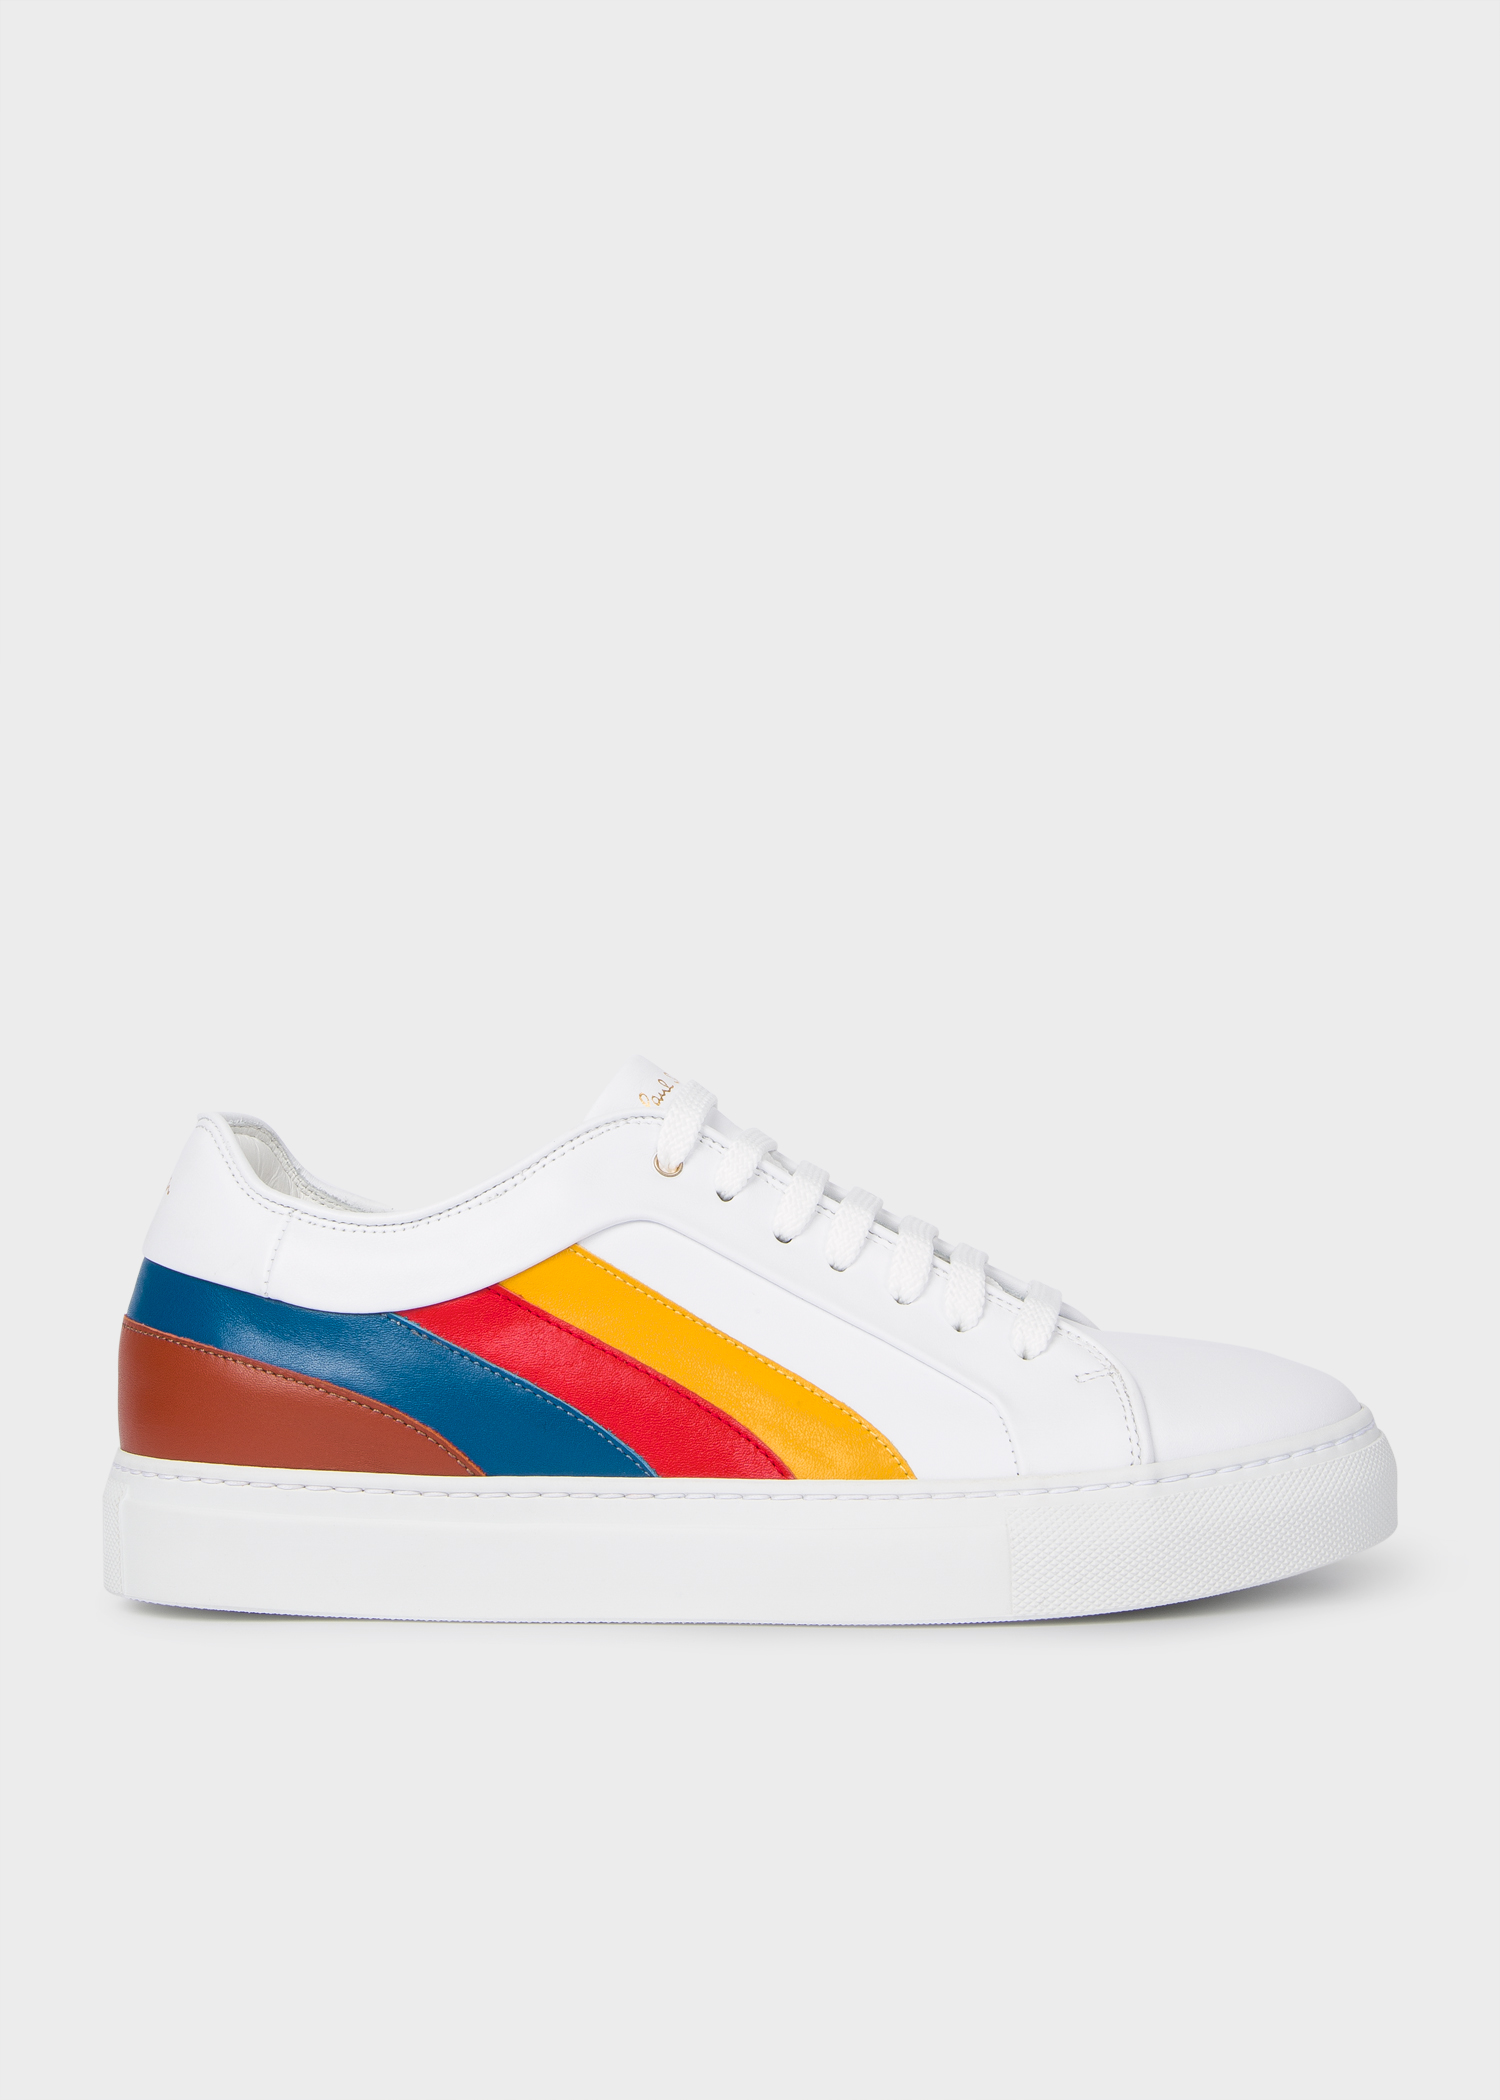 54f96d5a1e Men's White Leather 'Basso' Sneakers With Multi-Coloured Panels ...